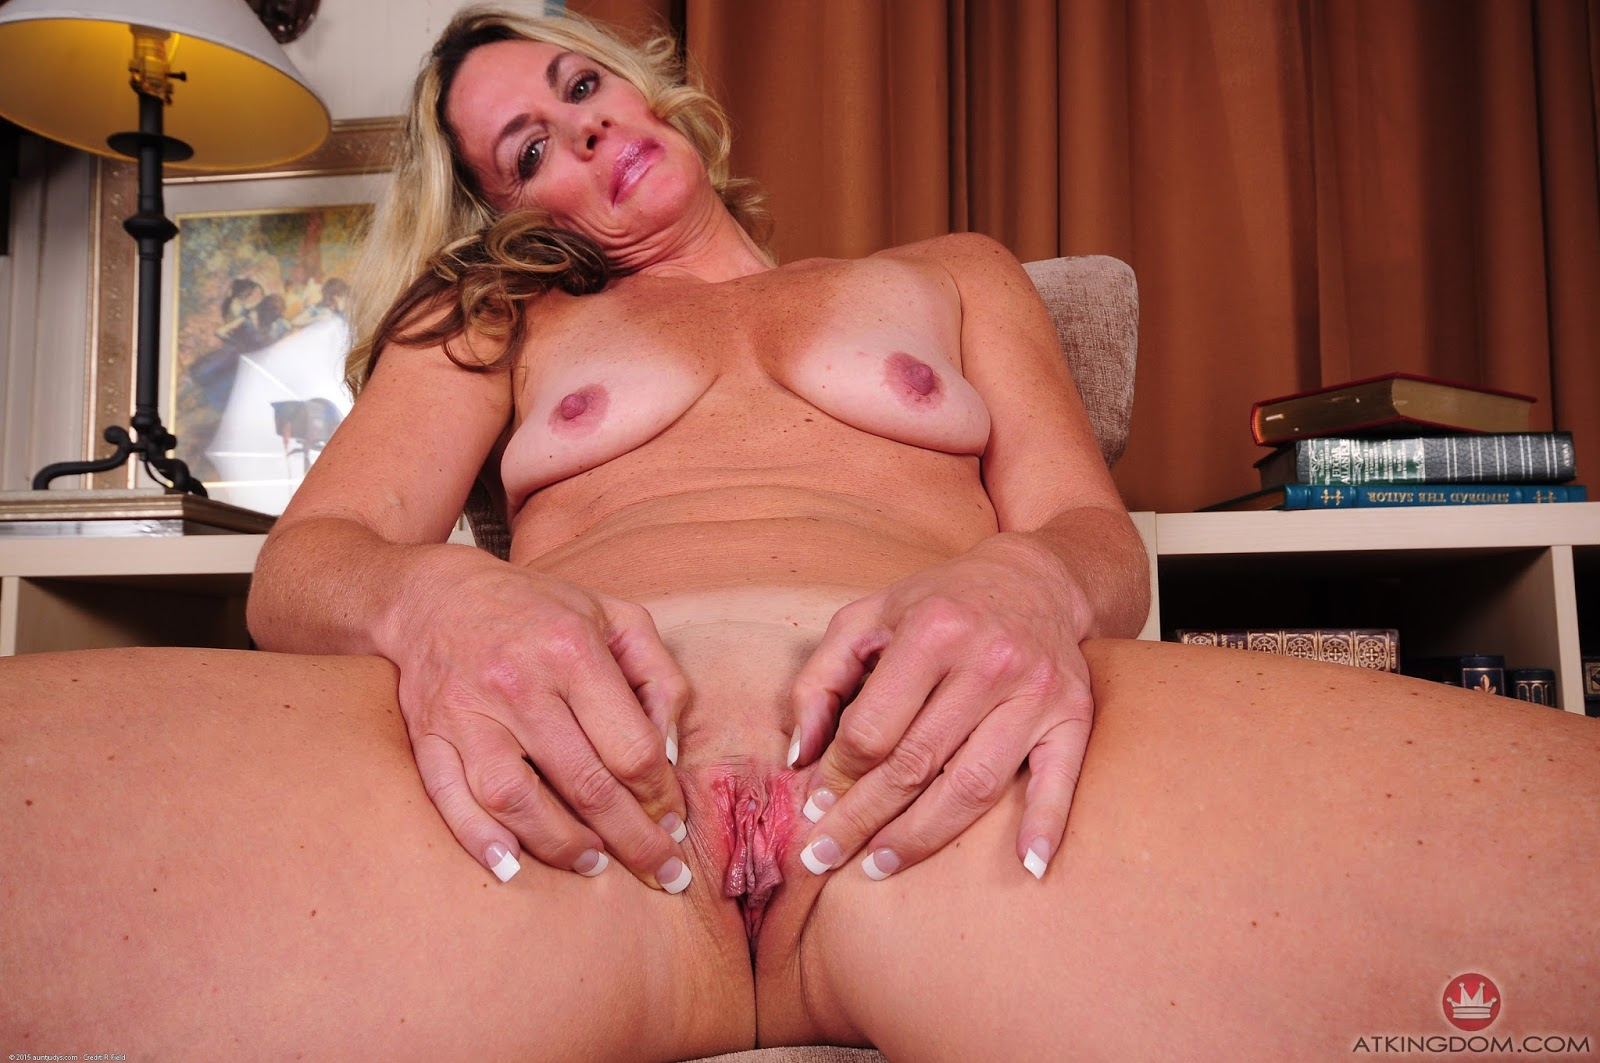 Mature Porn at Aunt Judys - The